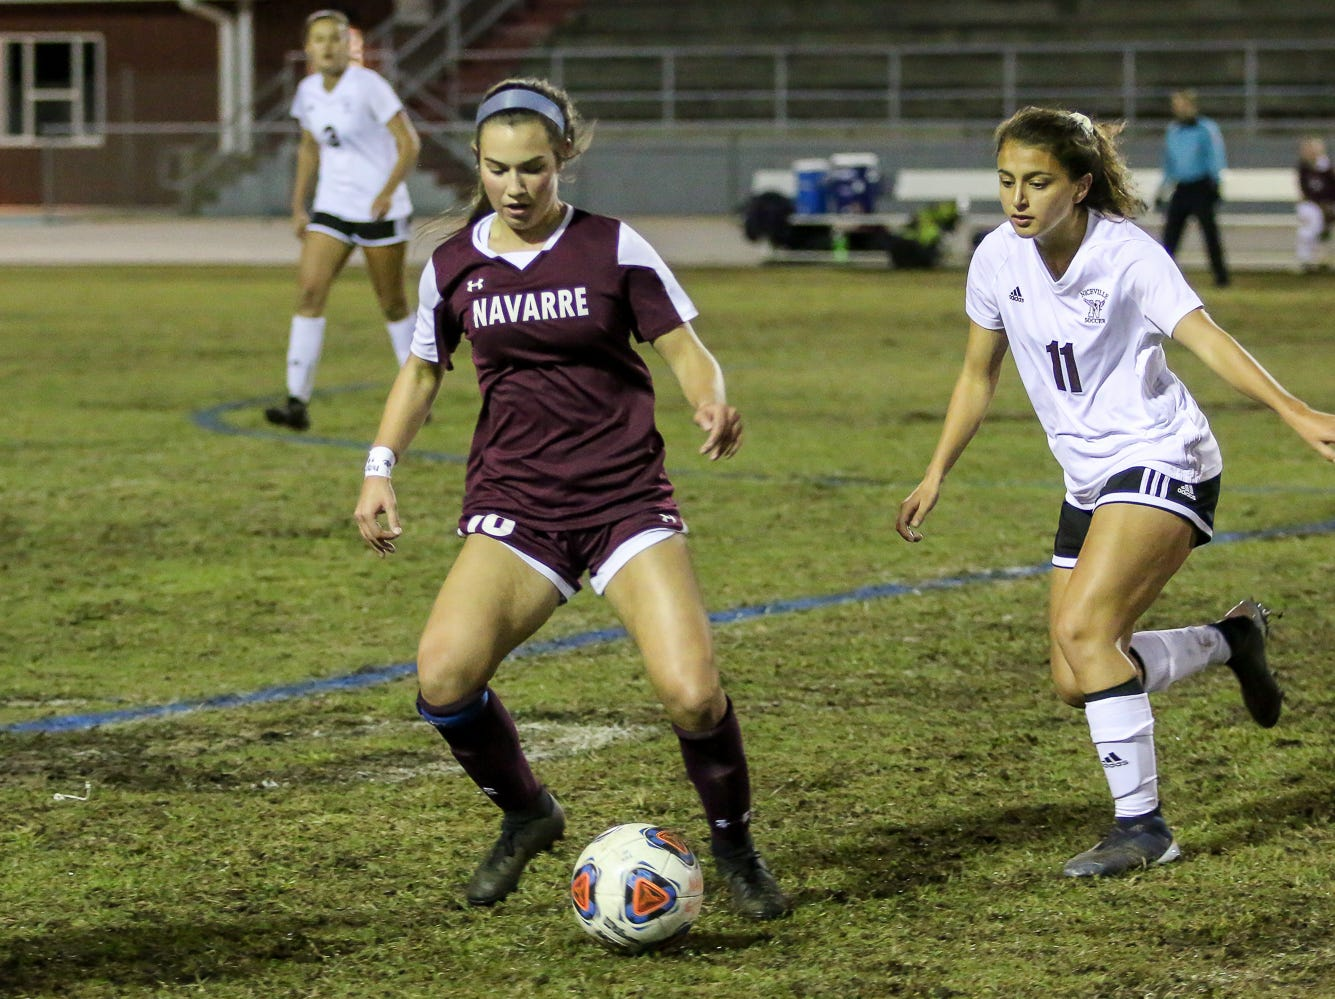 Navarre's Skylar Woods (18) works to keep the ball away from Niceville's Kayla Fernandez (11) in a District 1-4A showdown of unbeaten teams at Navarre High School on Tuesday, December 4, 2018. The game ended in a 1-1 tie.